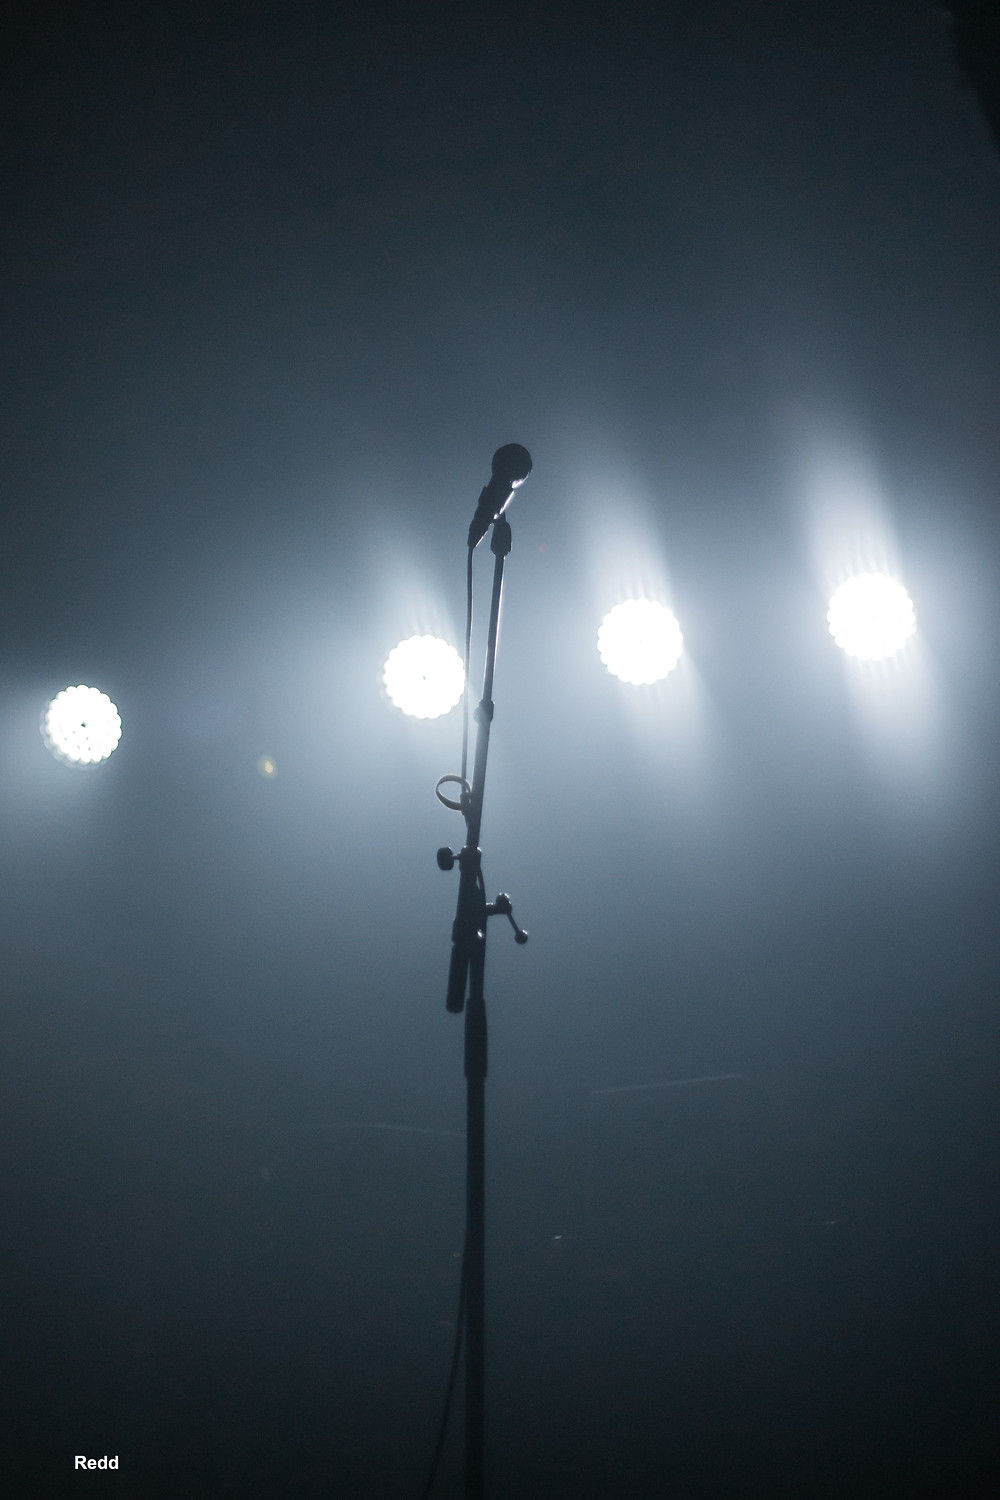 Black and White silhouette of a backlit microphone on stage